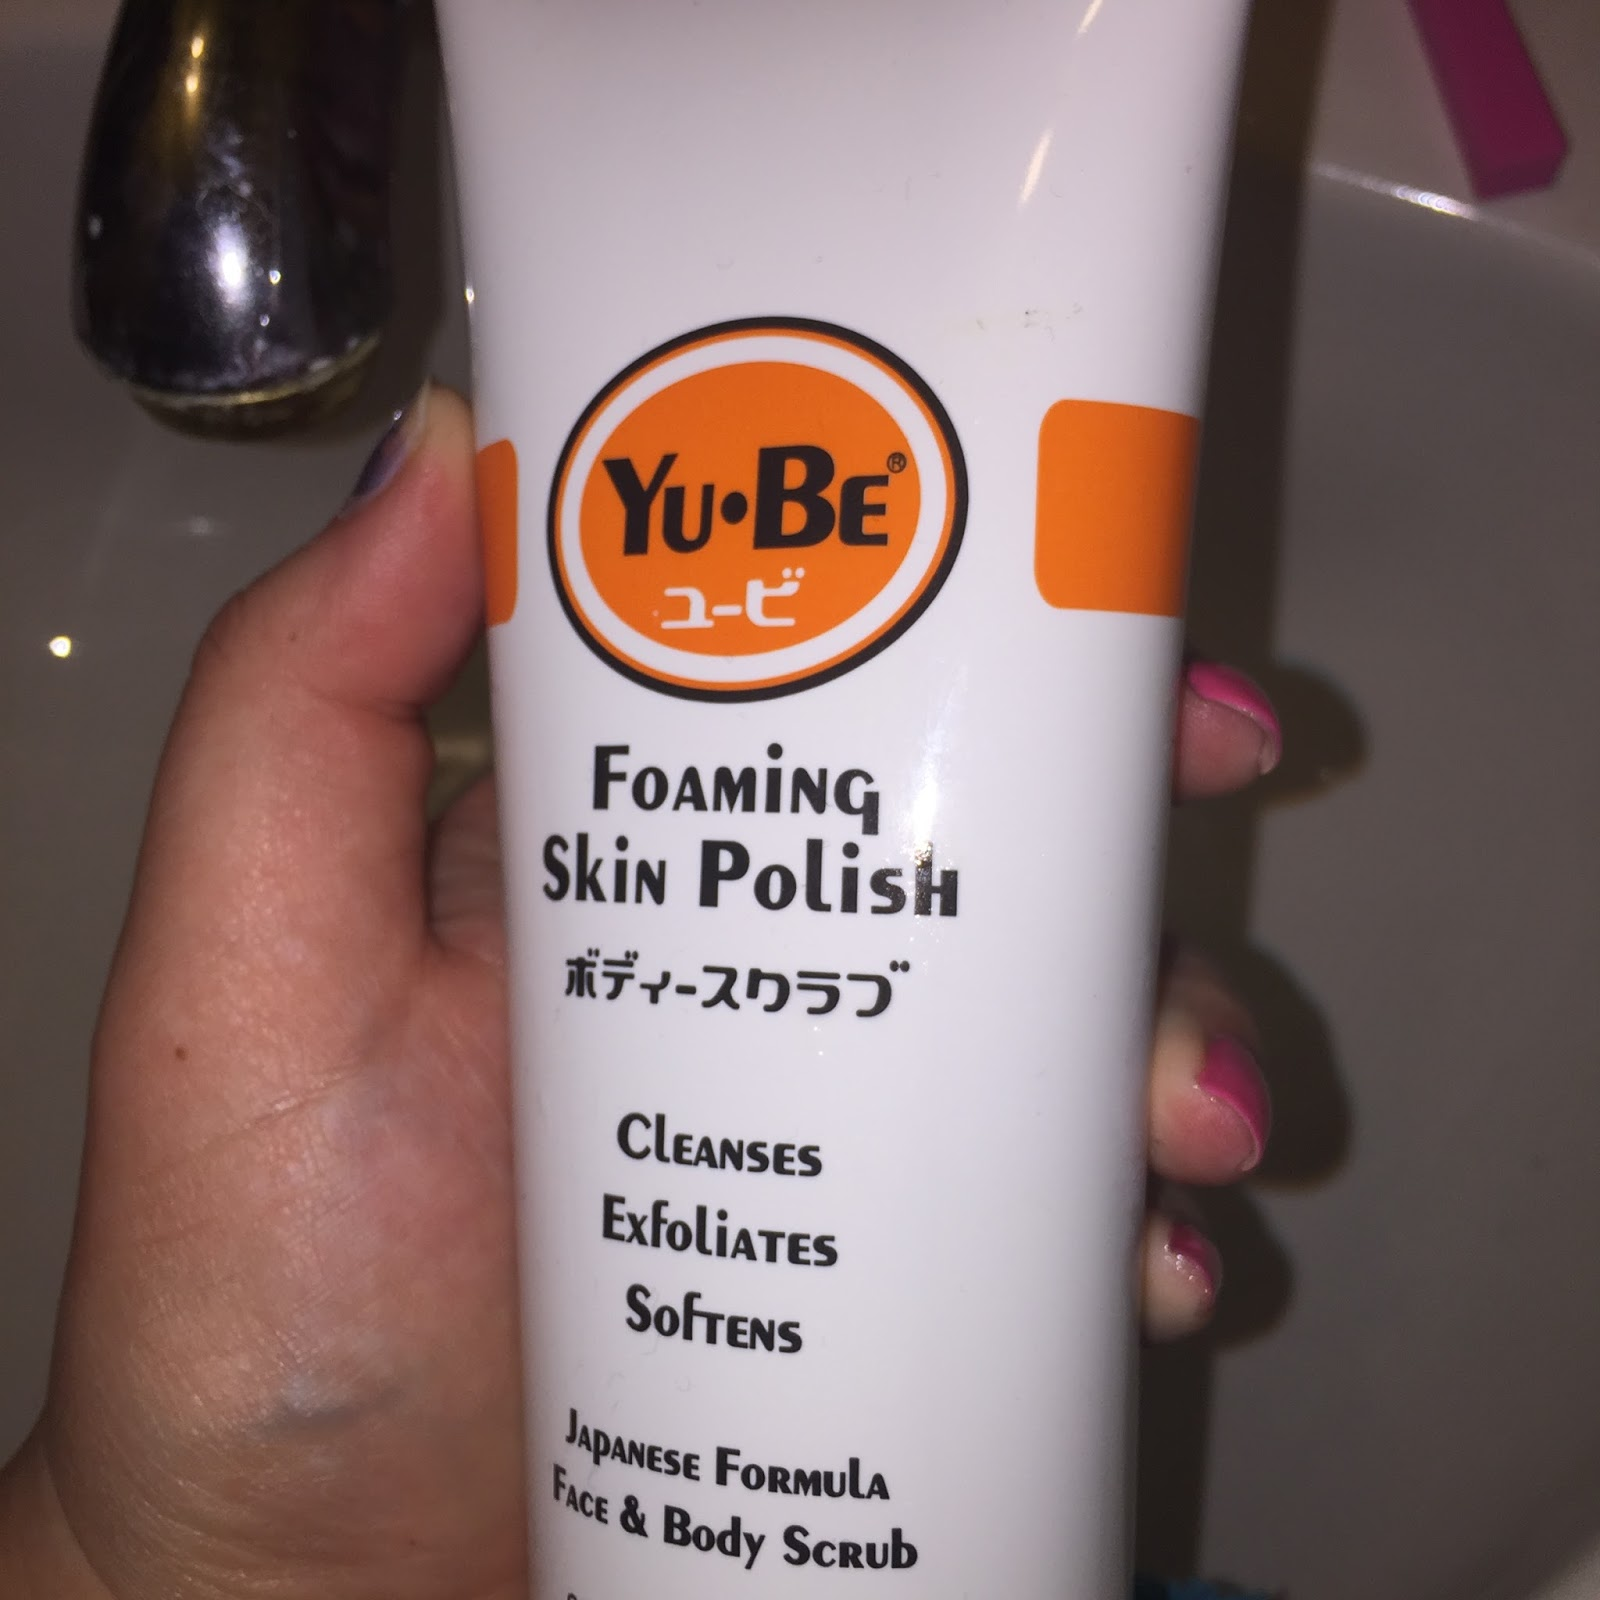 Yu-Be's Foaming Skin Polish.